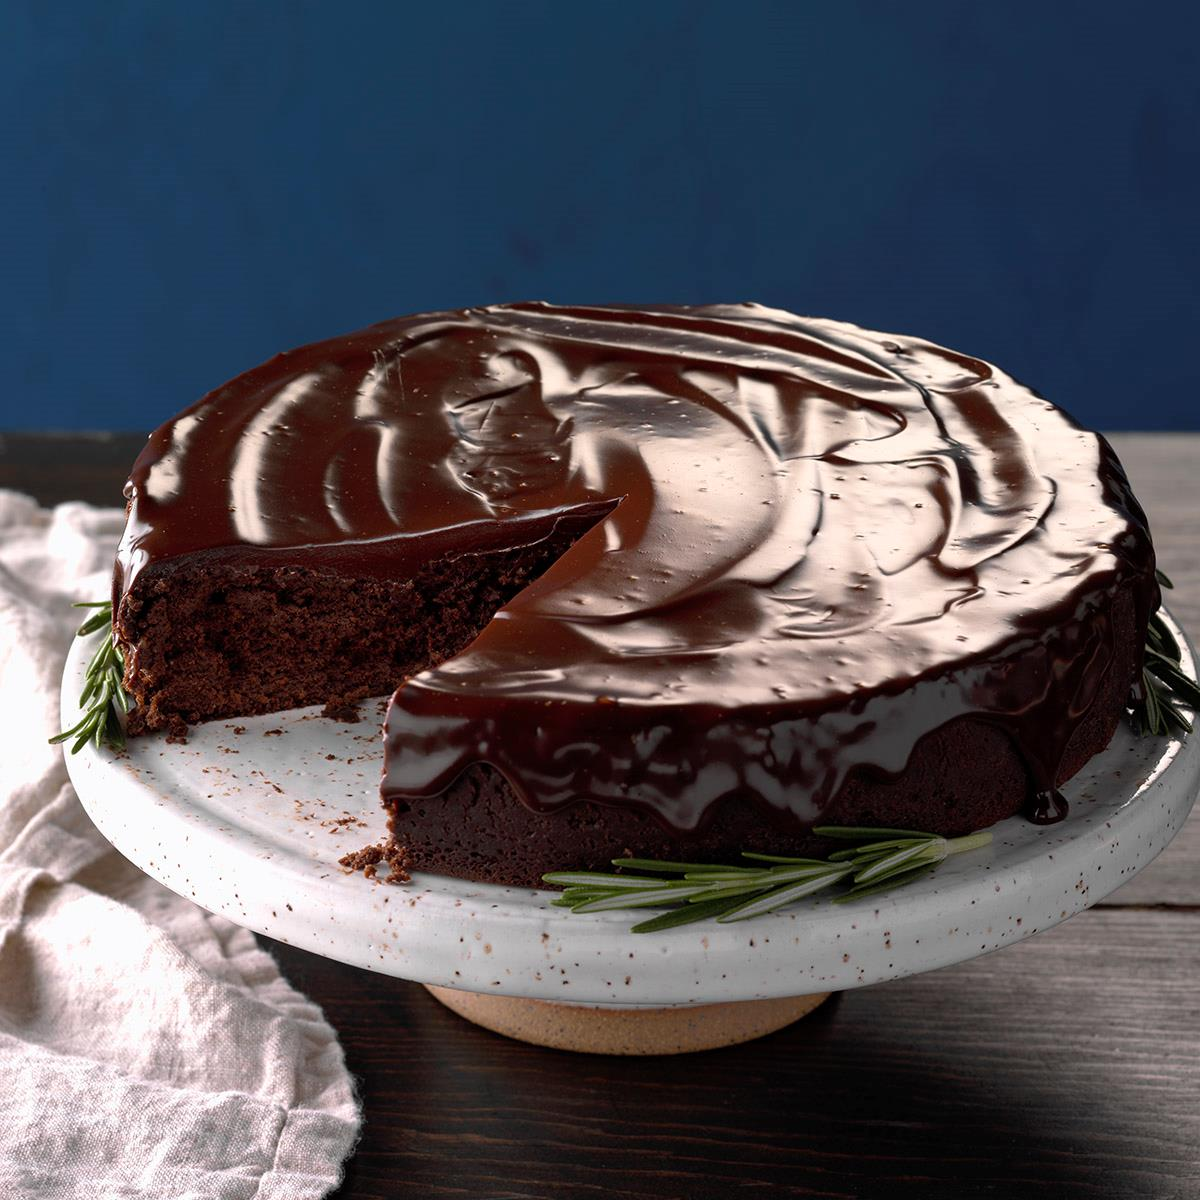 Flourless Chocolate Cake With Rosemary Ganache Recipe How To Make It Taste Of Home